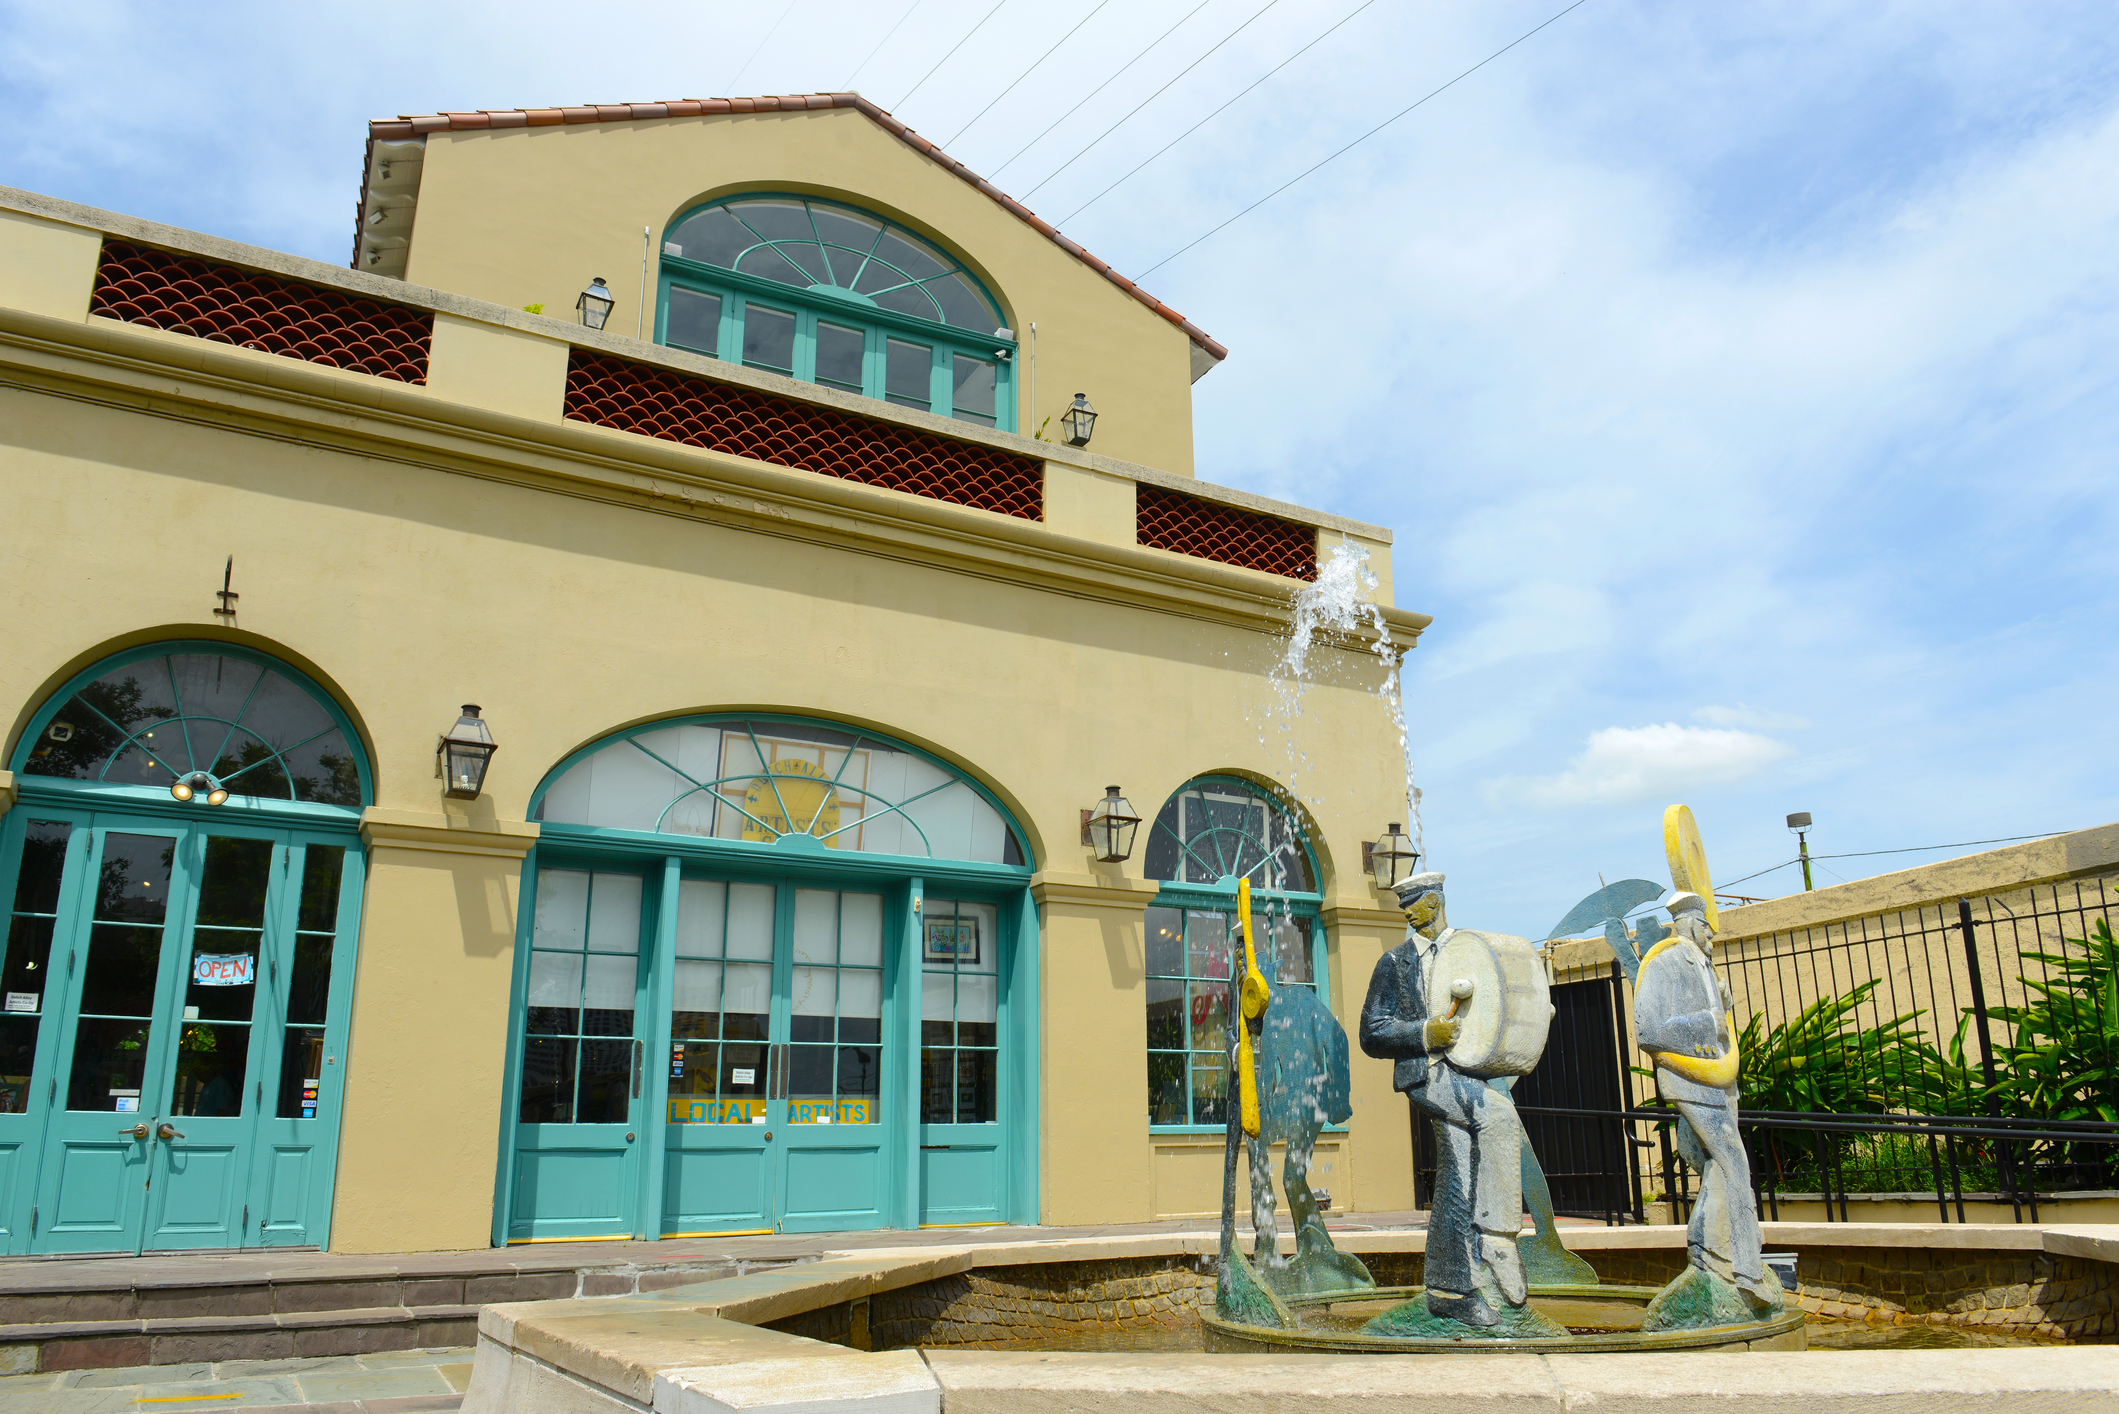 New-Orleans-Jazz-National-Historical-Park.jpg?mtime=20190405091625#asset:105424